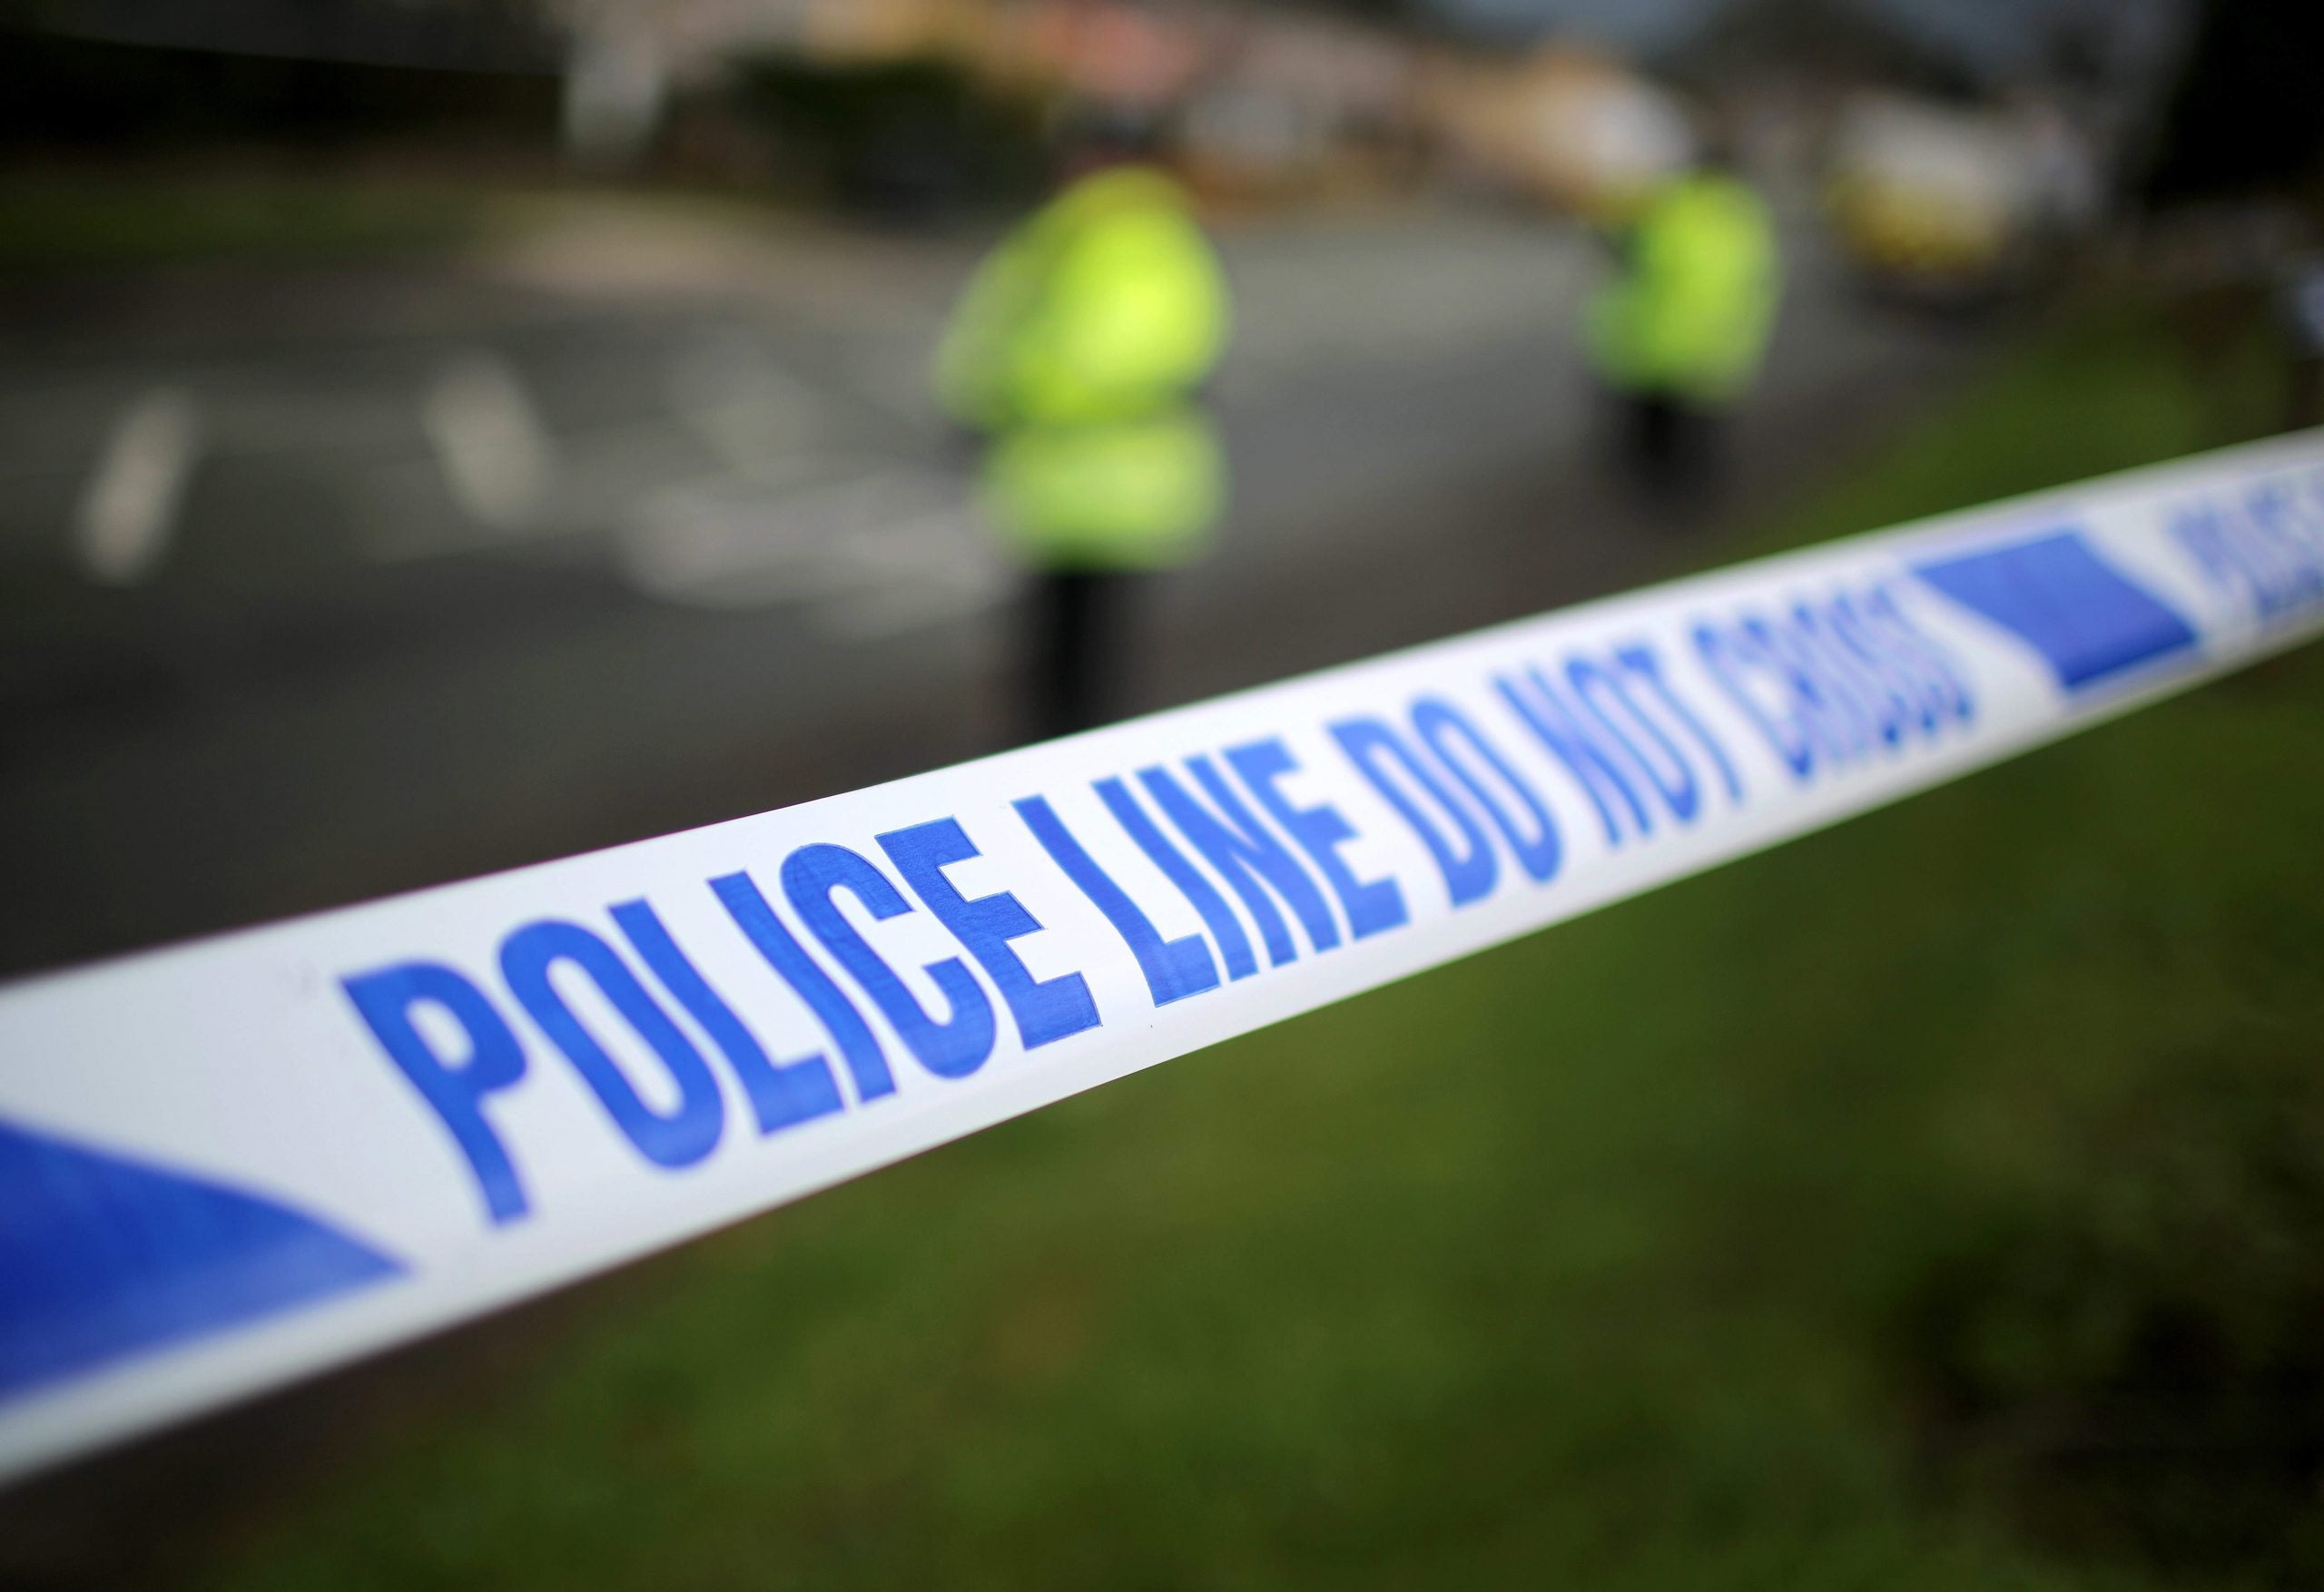 To hide behind falling crime rates is to fail victims of crime